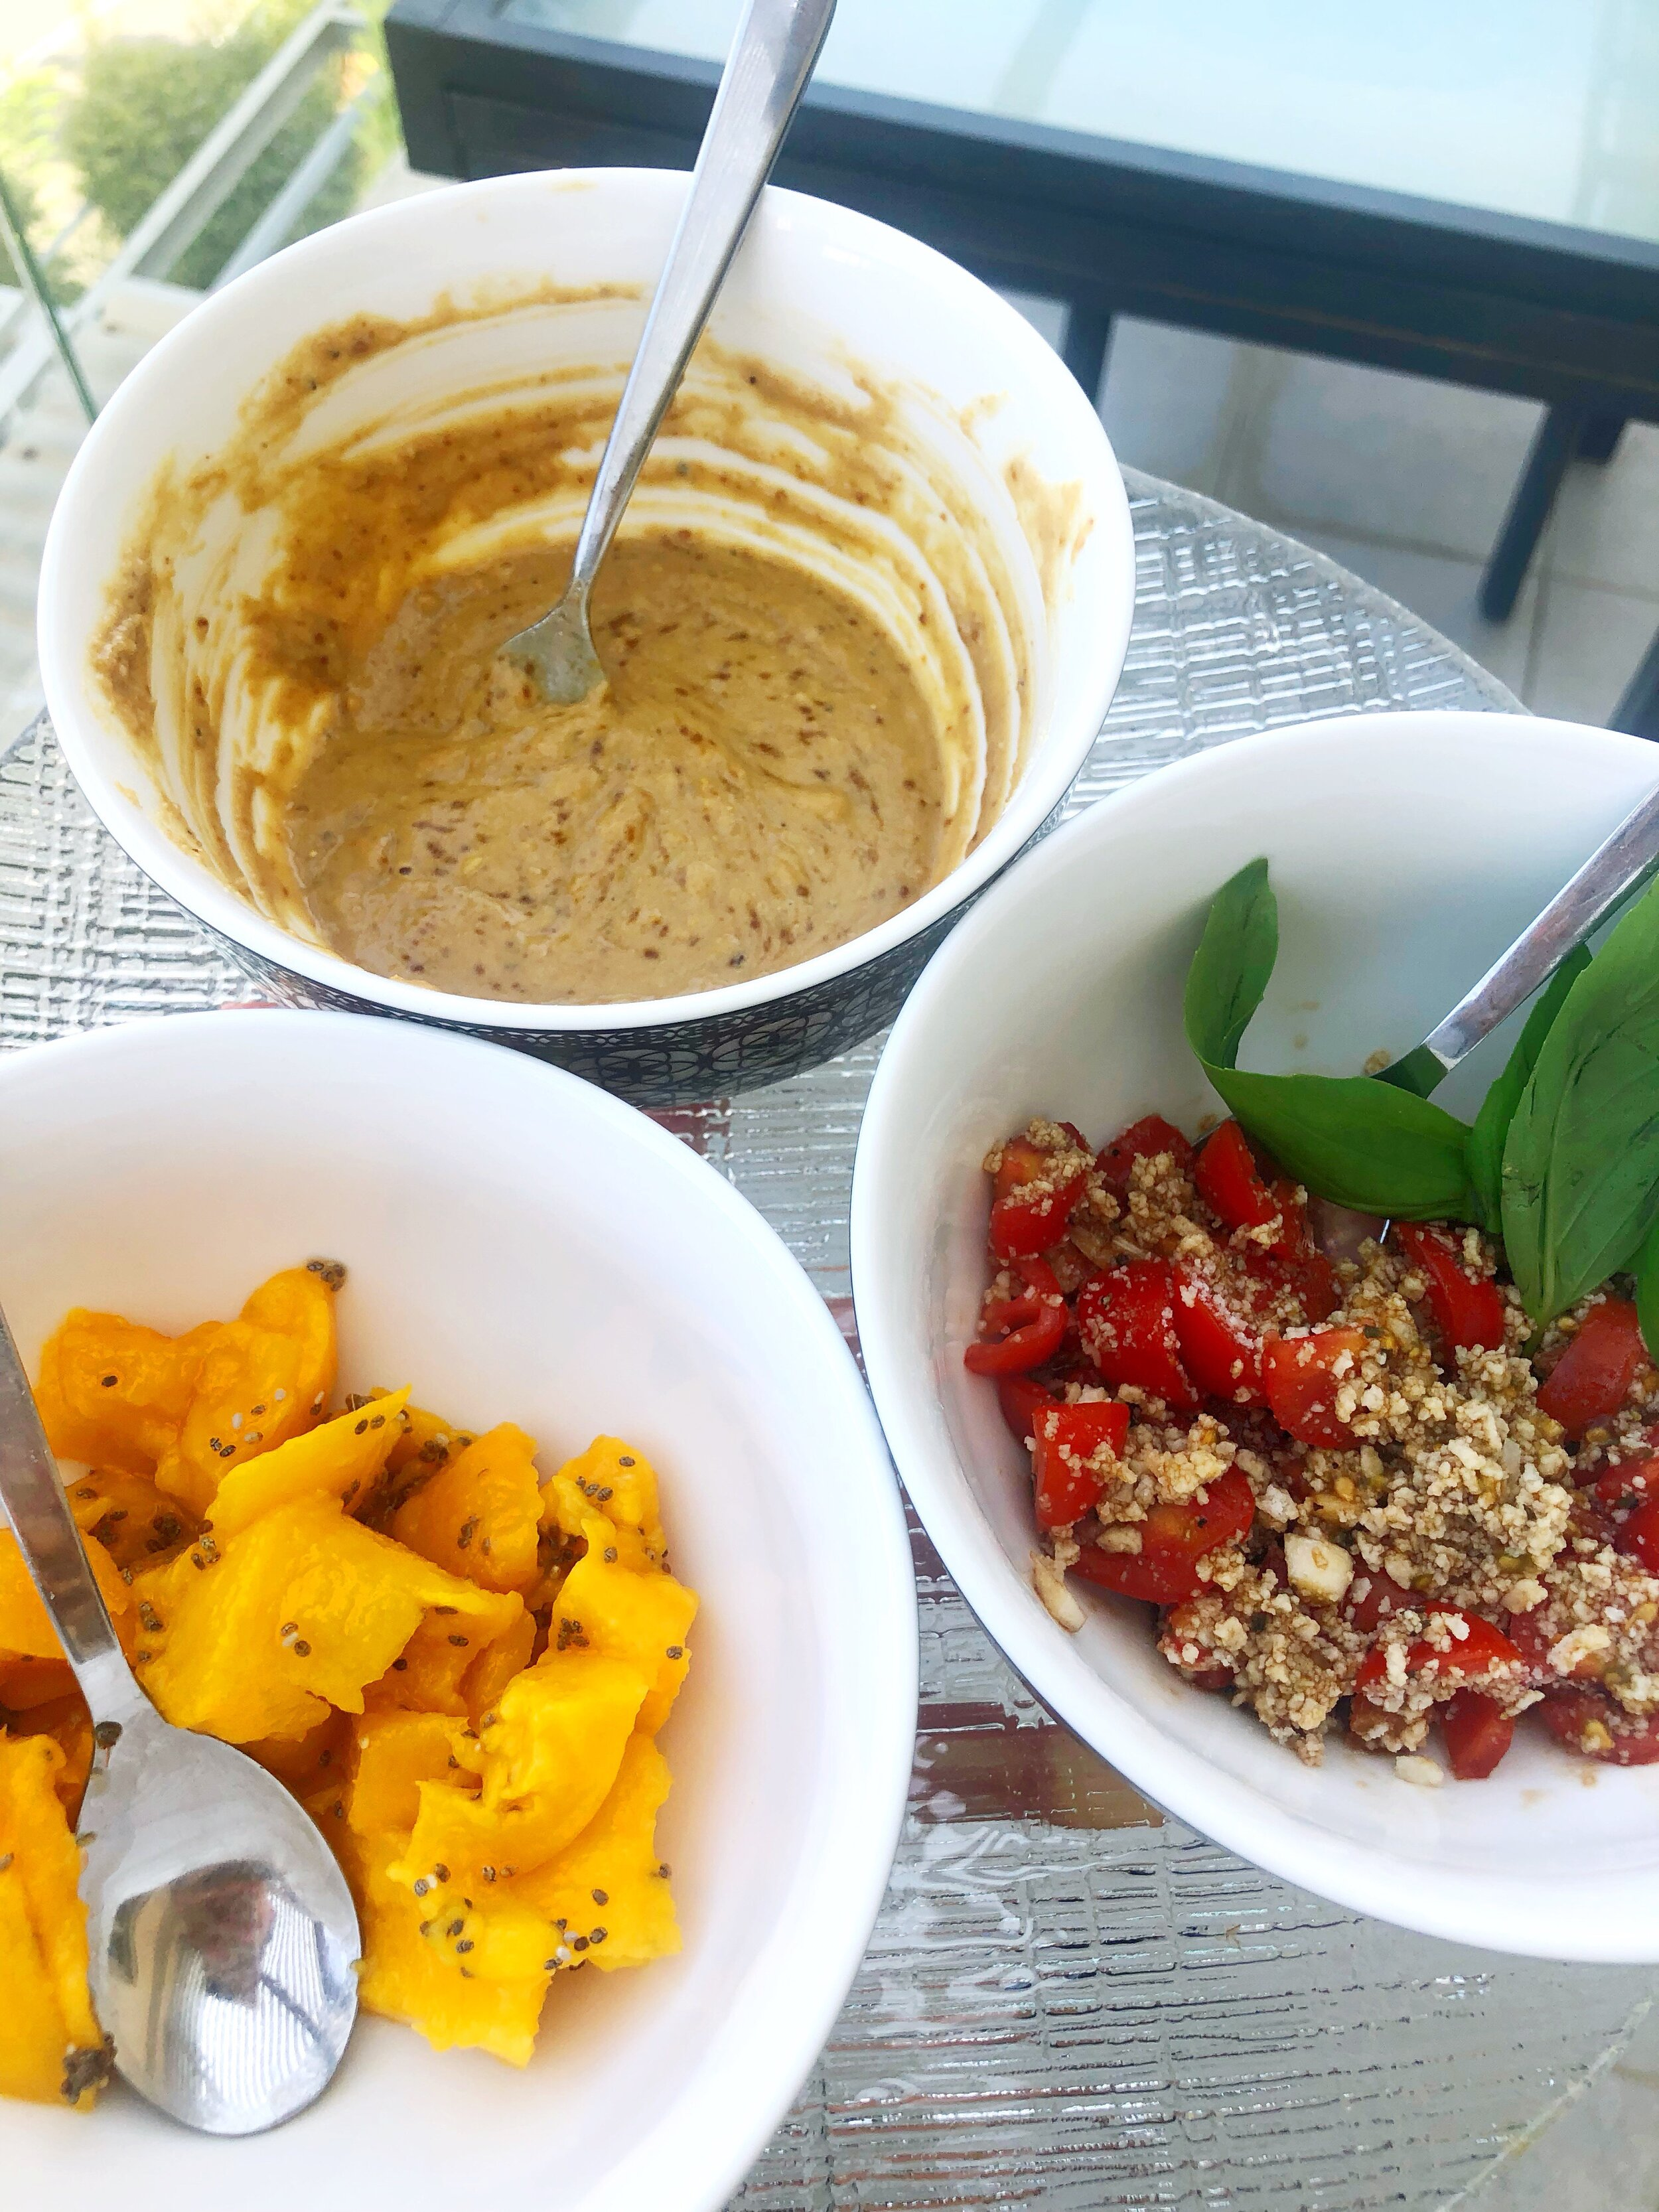 Sweet, Savory, Traditional - Sweet: Mango mashed with Chia Seed topped with RustysNuts Almond Butter with HalvaSavory: Homemade Peanut Butter Curry Dip with Slices of Cucumber + Peanuts (Recipe Below)Traditional: Tomatoes, Garlic, Dried Basil, Olive Oil + Balsamic Vinegar. Topped with fresh basil + Violife vegan cheese